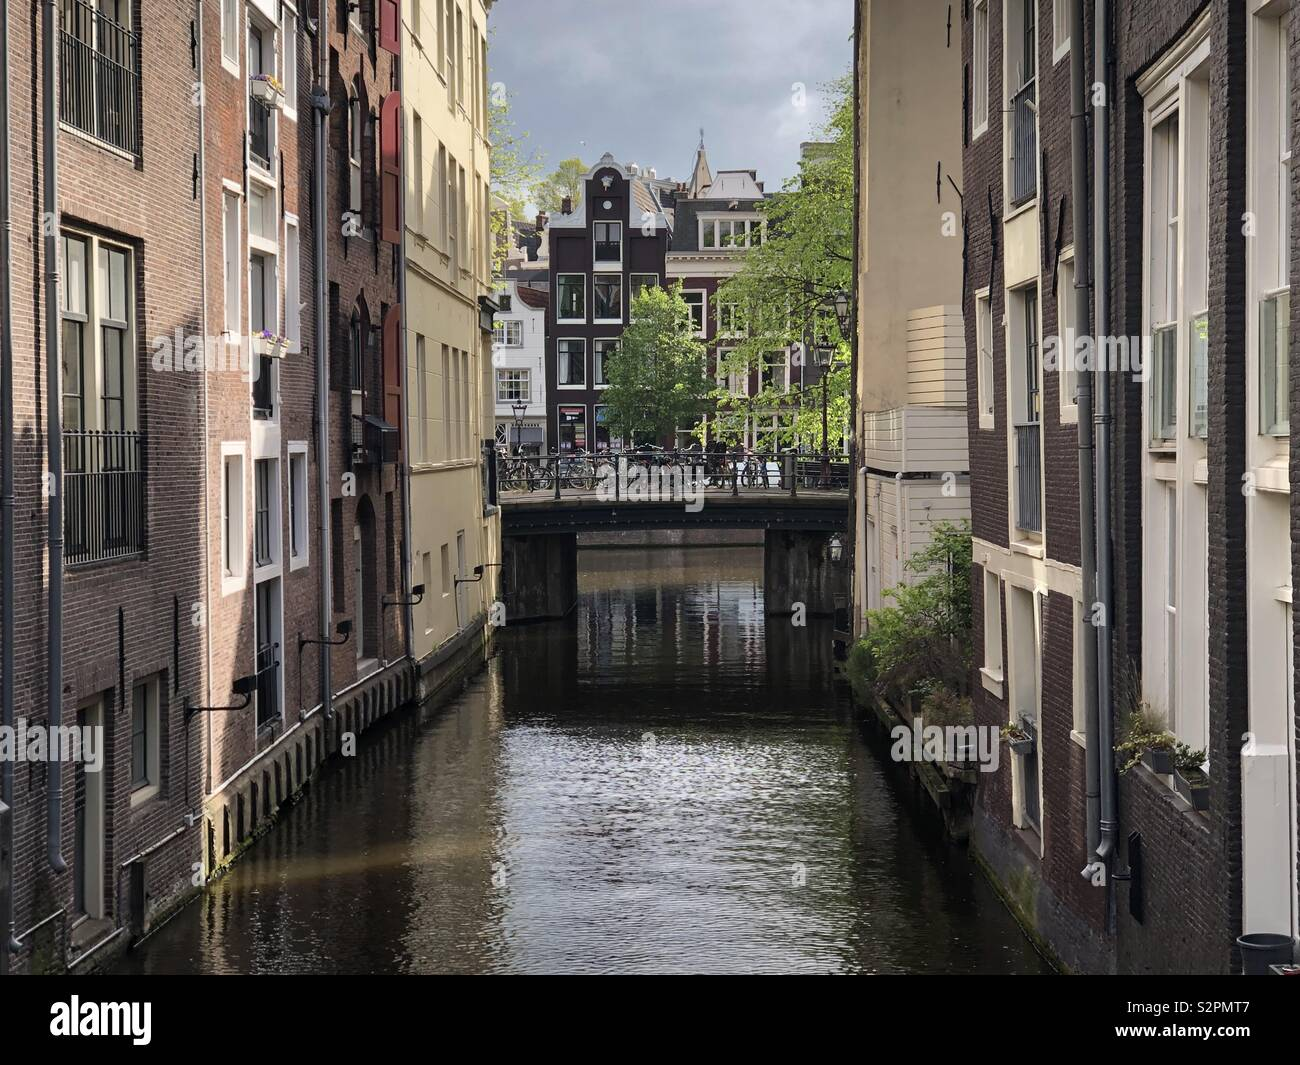 Small bridge over canal in Amsterdam. - Stock Image